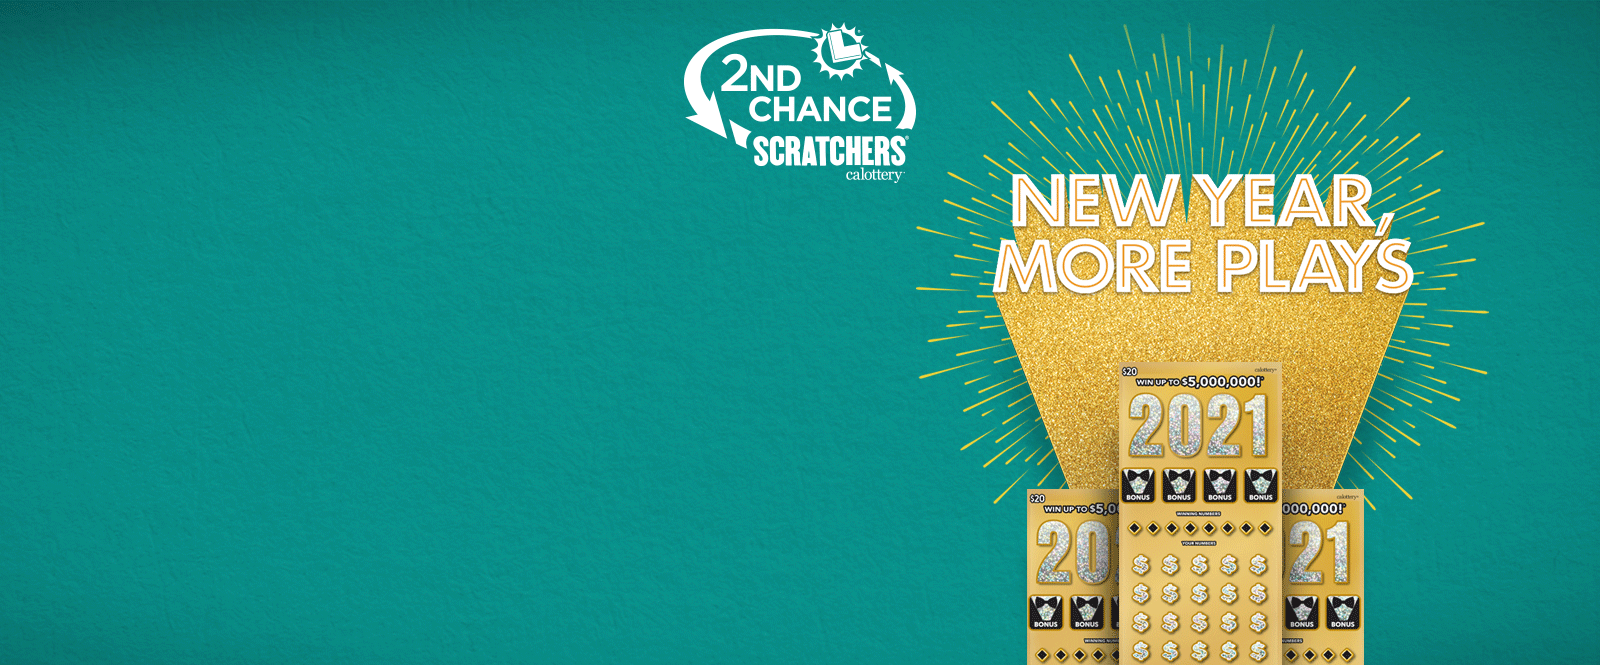 2nd Chance Scratchers logo on green background